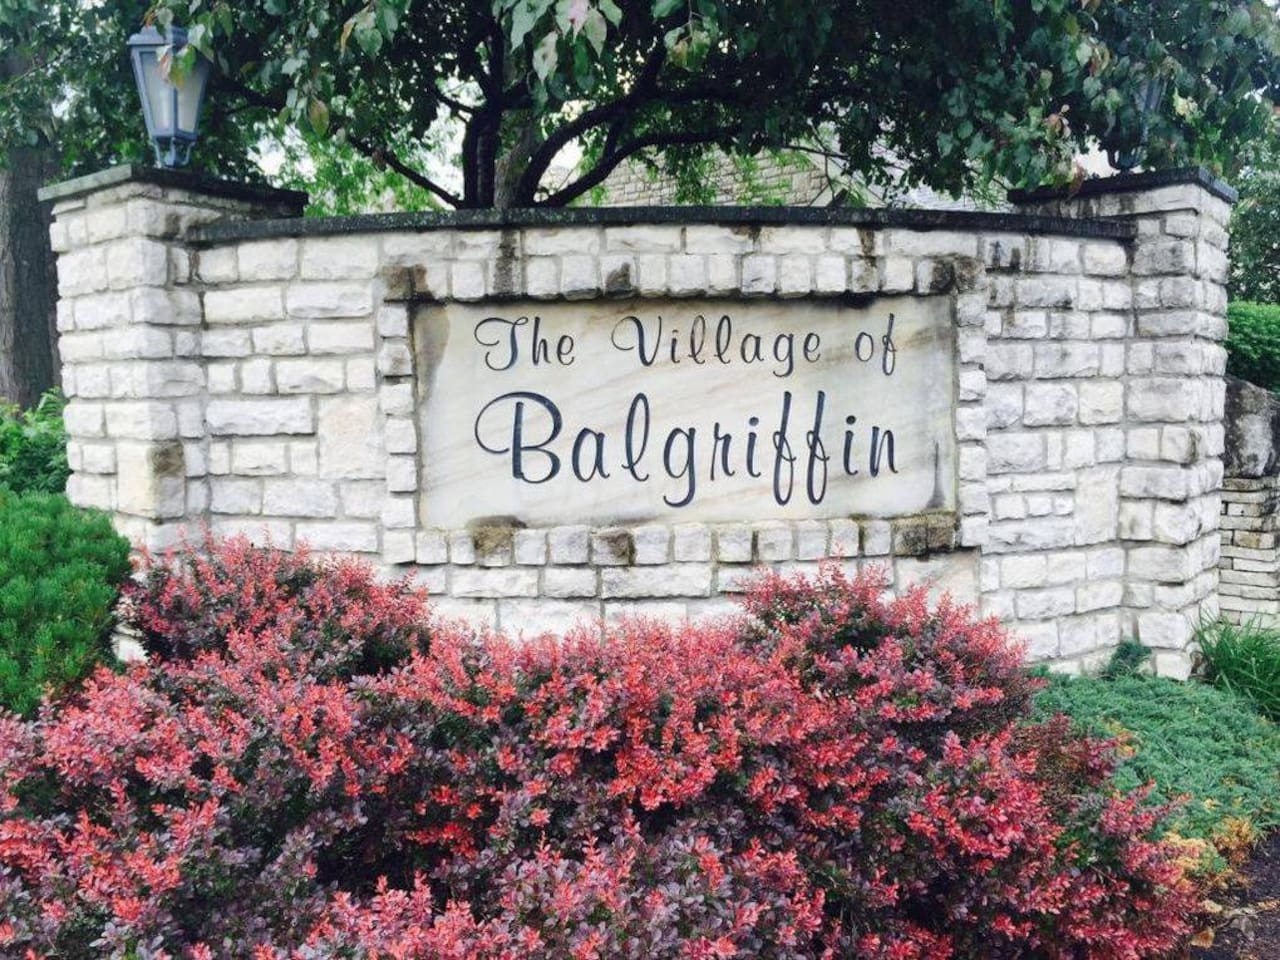 Entrance to the condominium complex